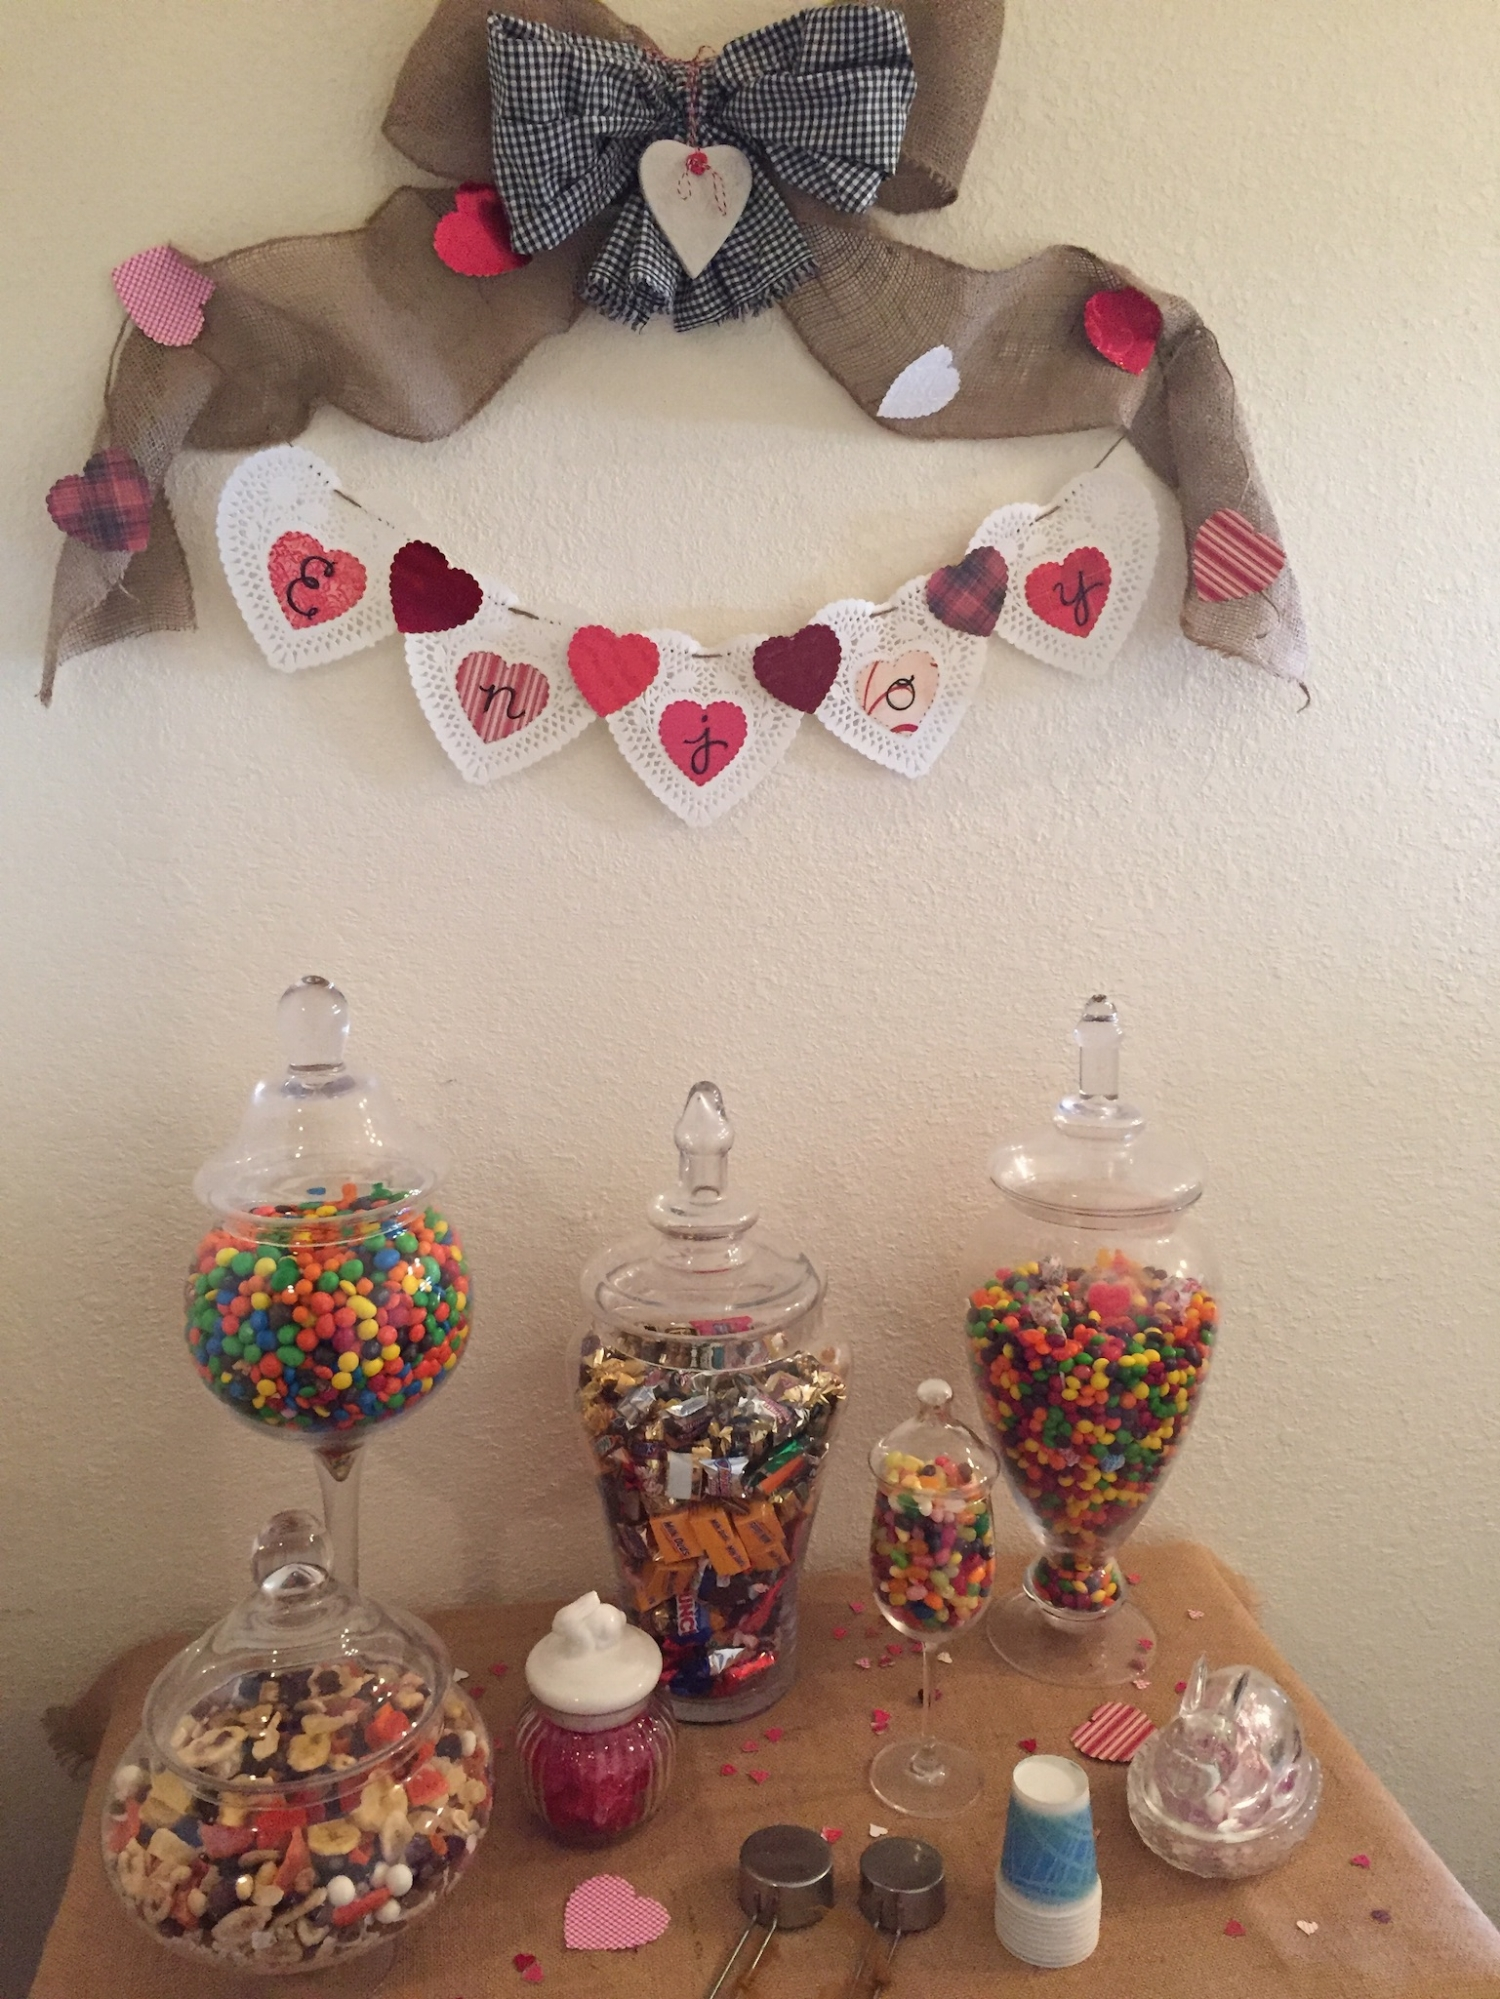 Snack bar decorated for Valentine's Day